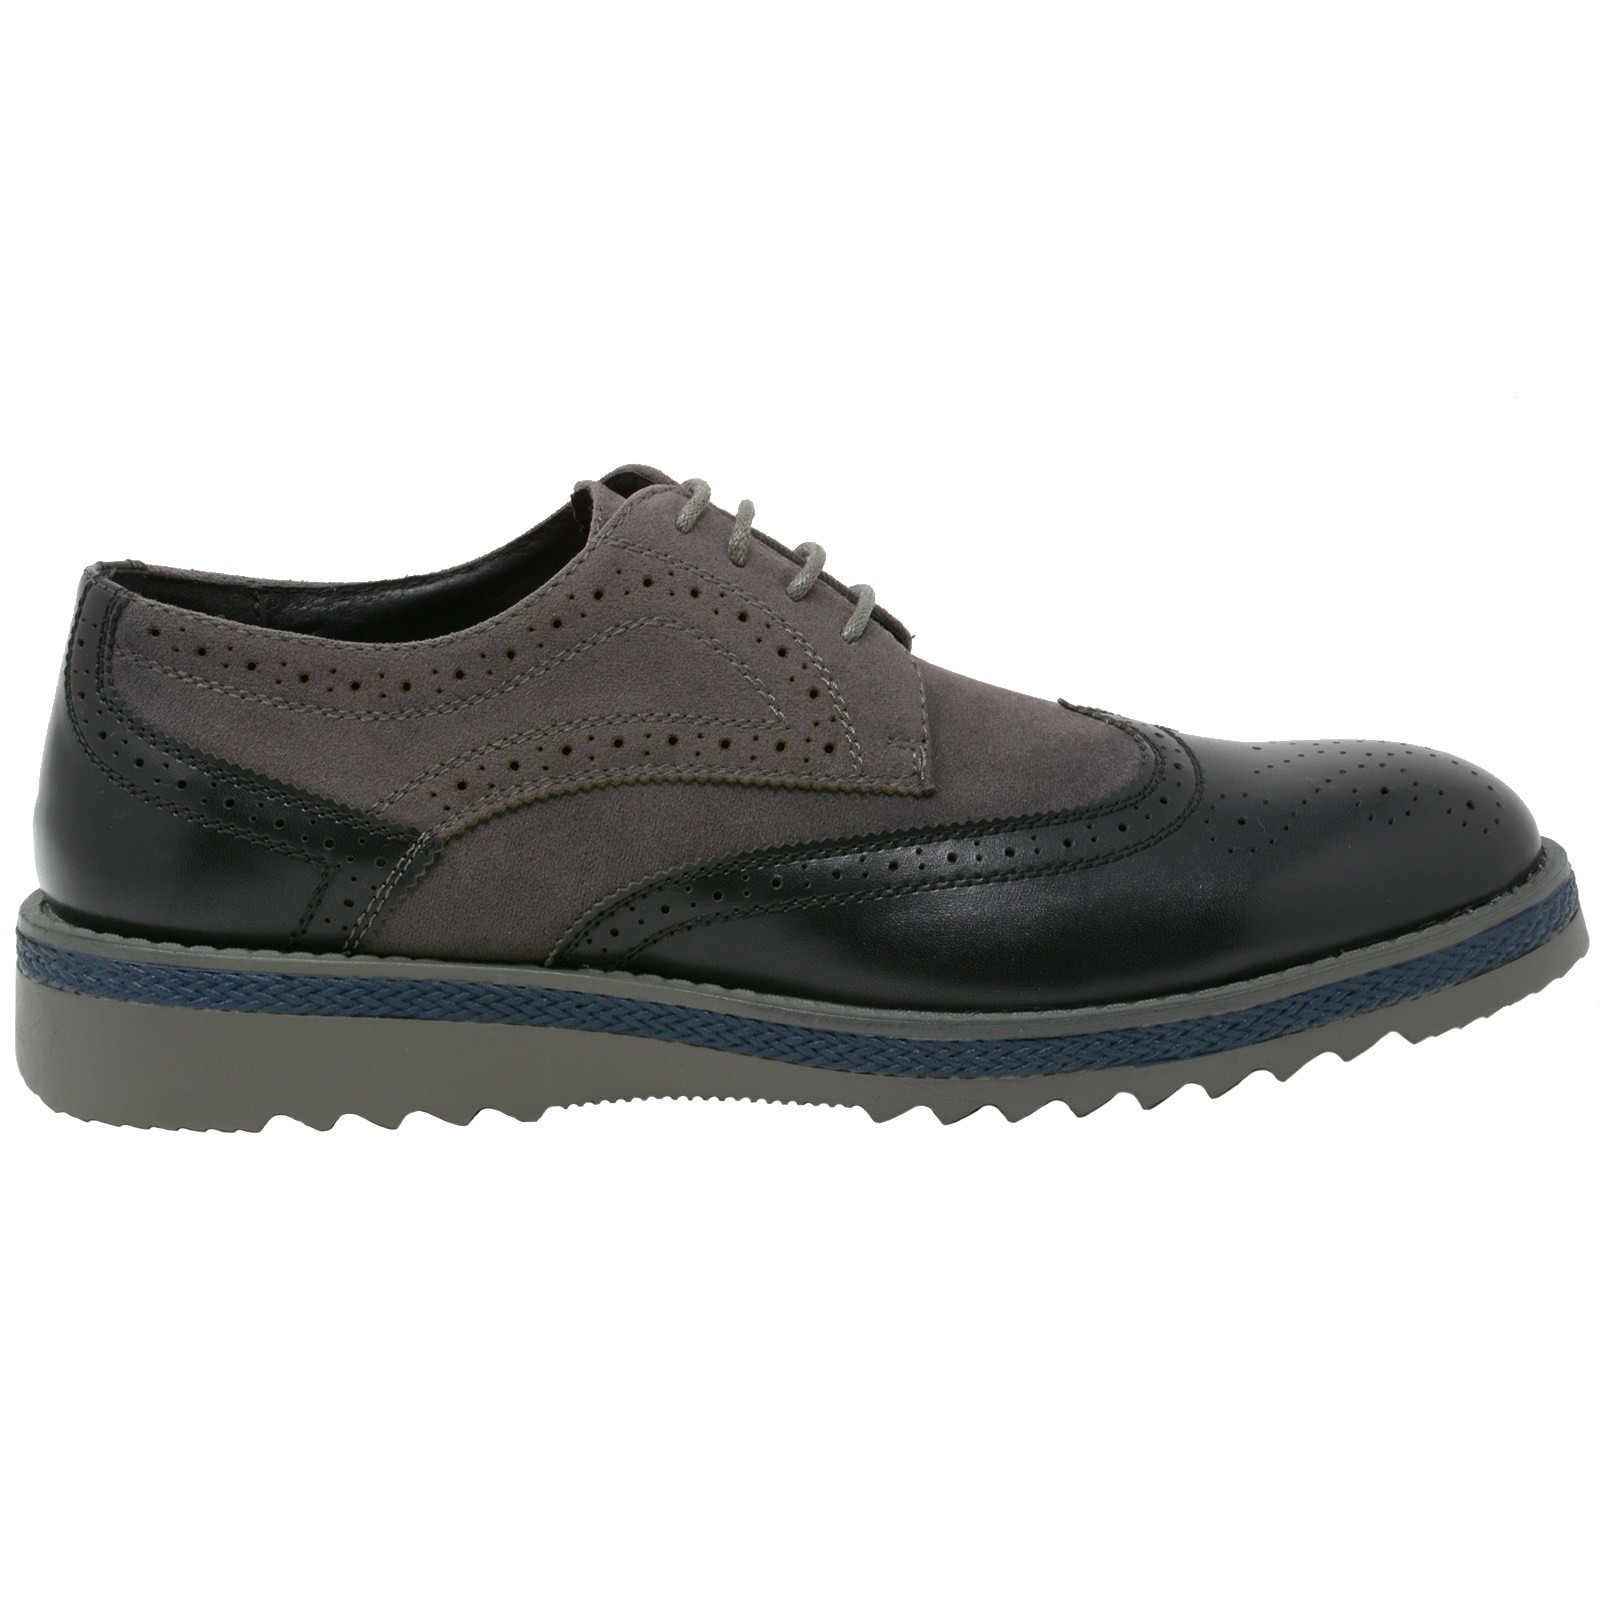 Alpine-Swiss-Alec-Mens-Wingtip-Shoes-1-5-Ripple-Sole-Leather-Insole-amp-Lining thumbnail 18